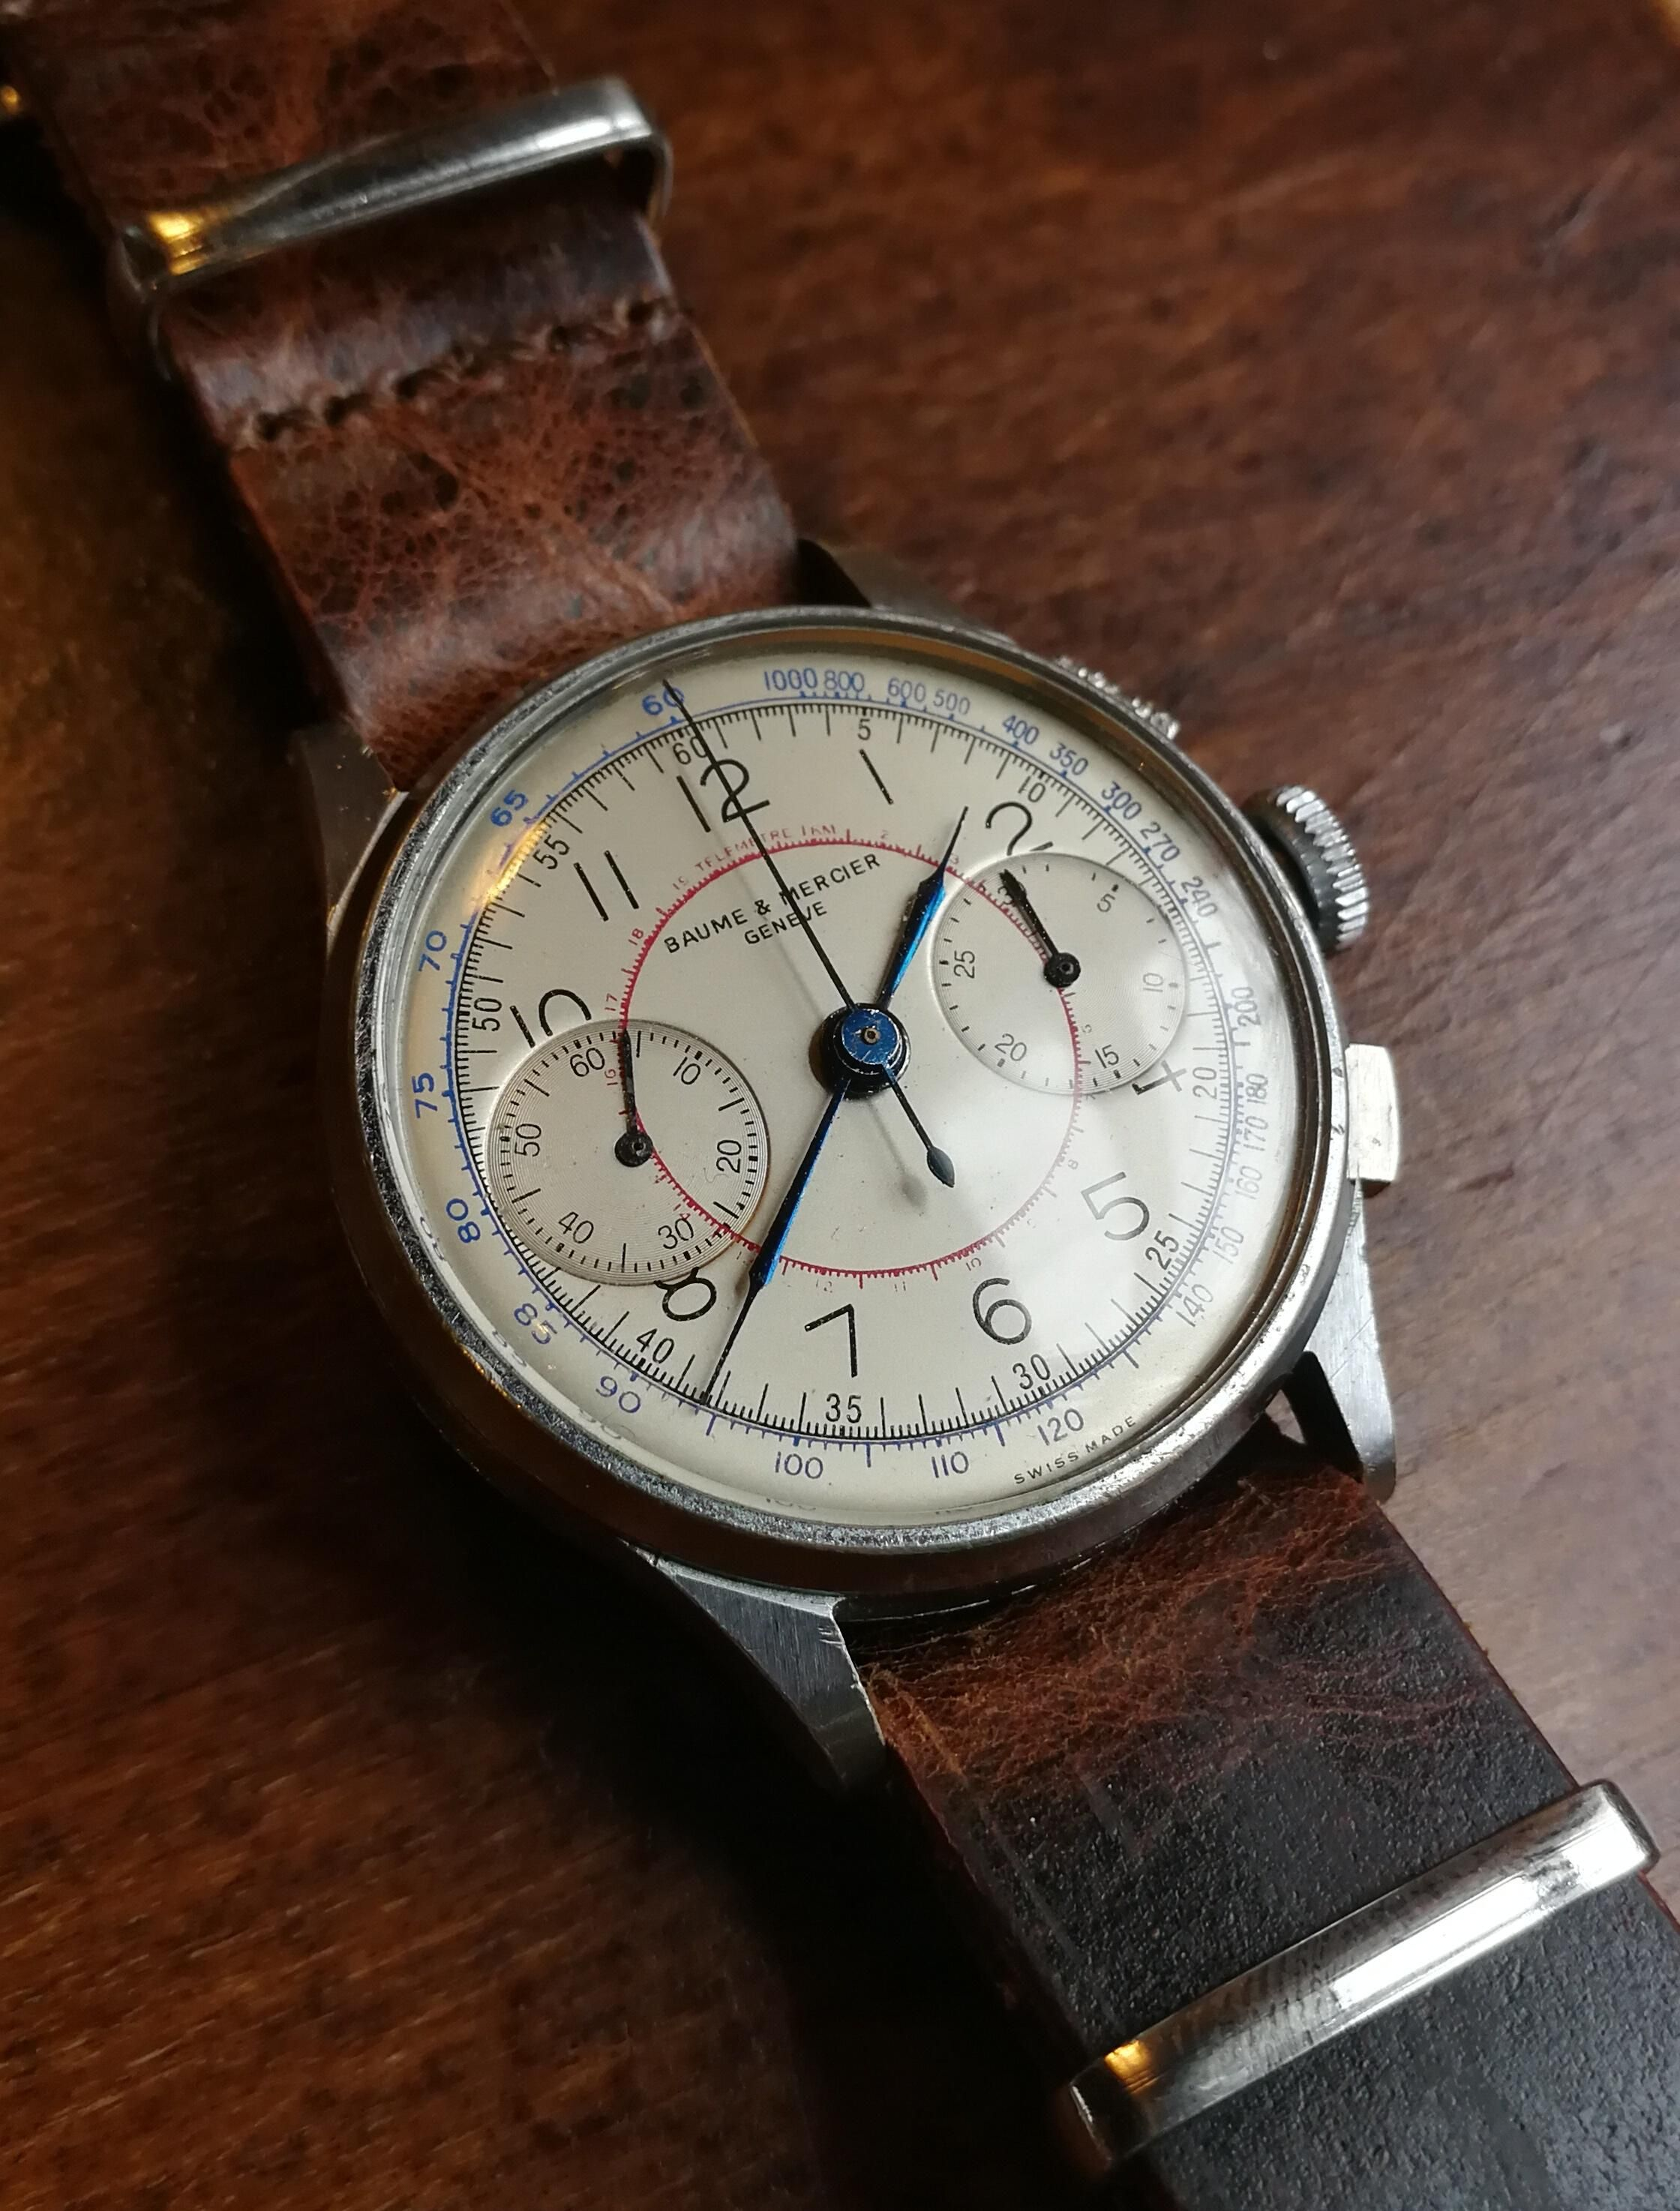 growing is vintage watch review latest style inspired the addition longines watches dress to family of full on heritage a designs patrol gear from lead based